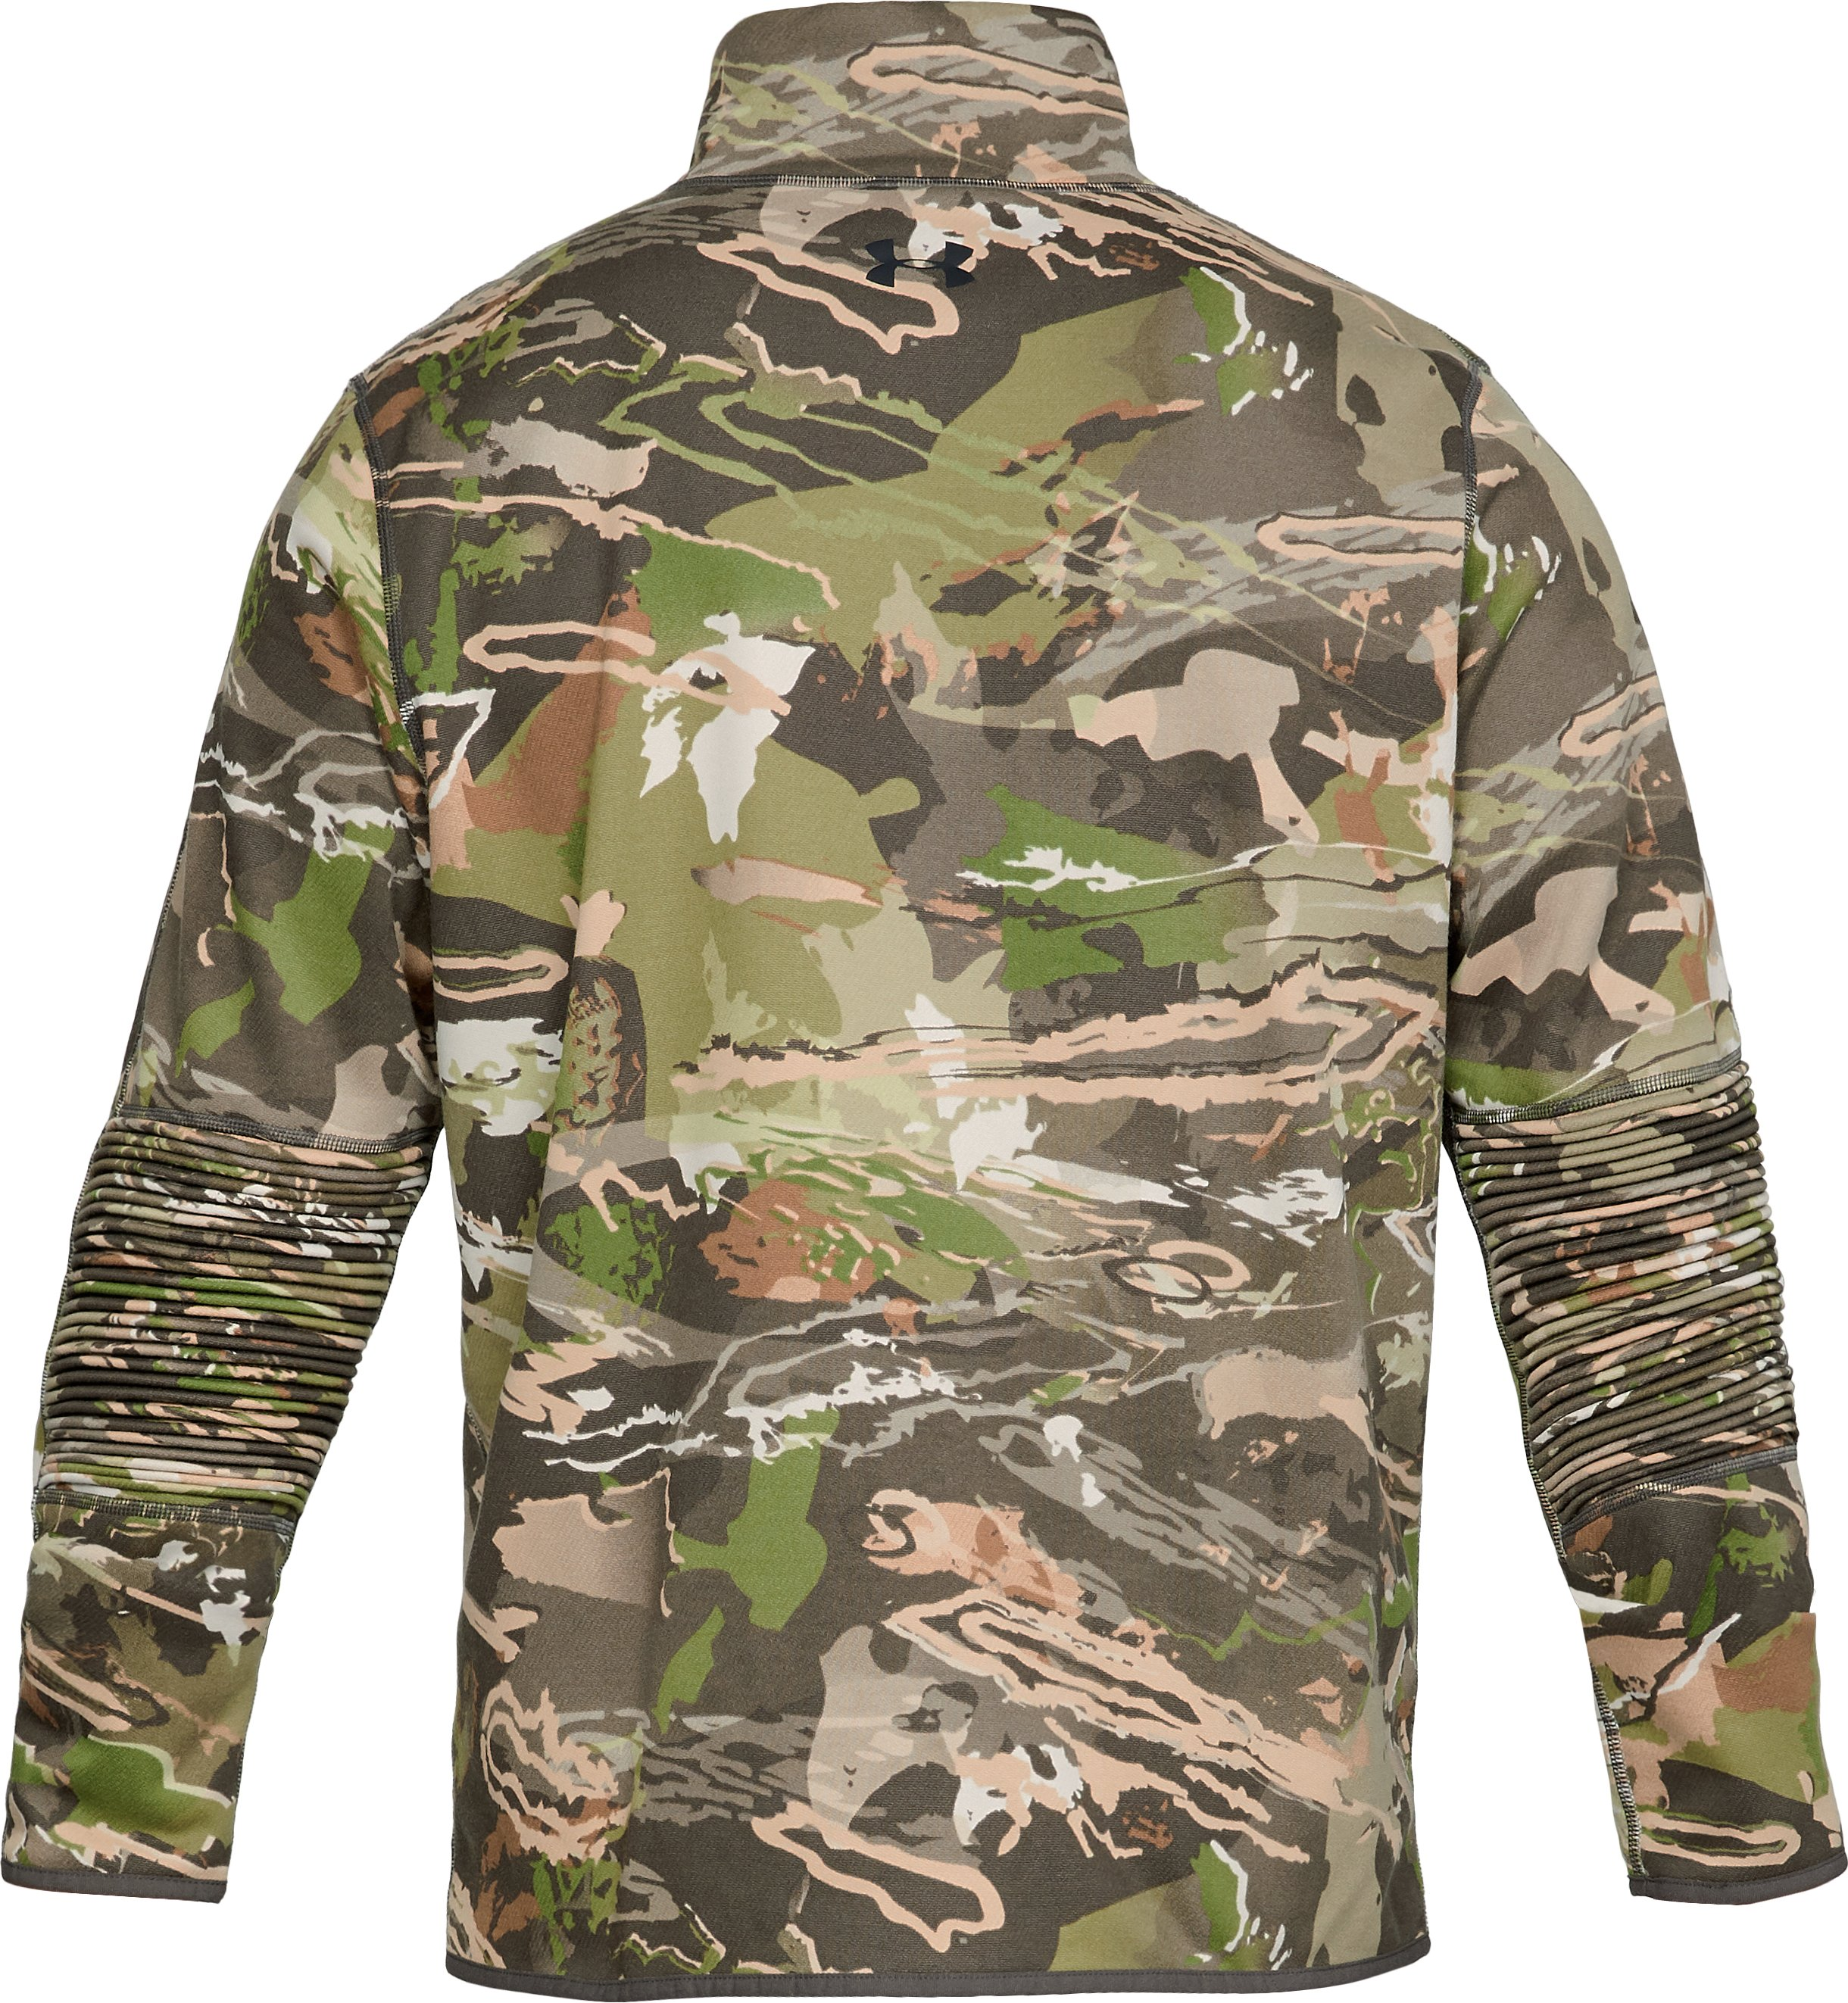 Men's UA Rut Fleece Full Zip Jacket, UA Forest Camo,